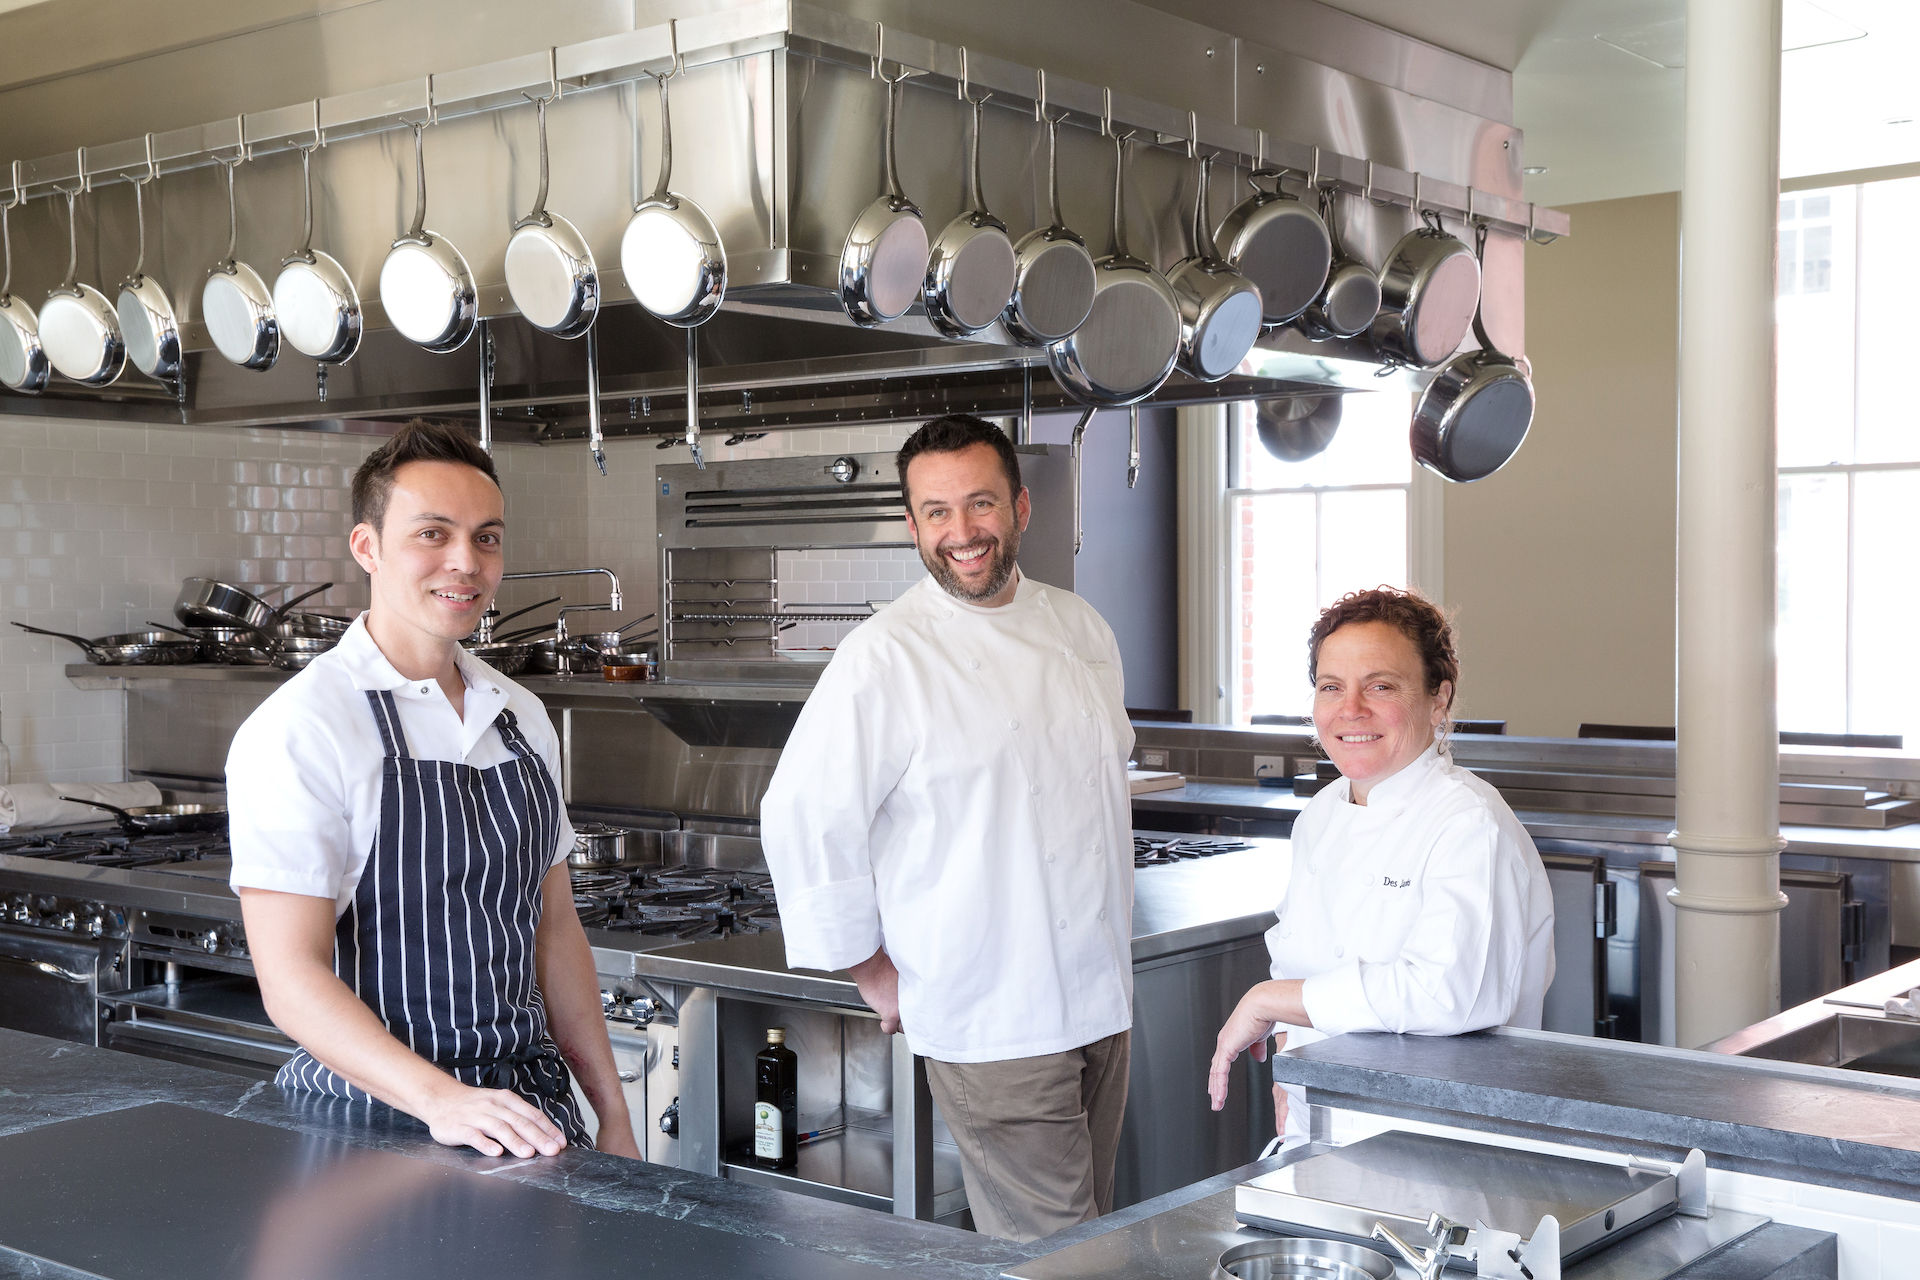 Left to right: Chefs Reylon Agustin, Robbie Lewis and Traci Des Jardins